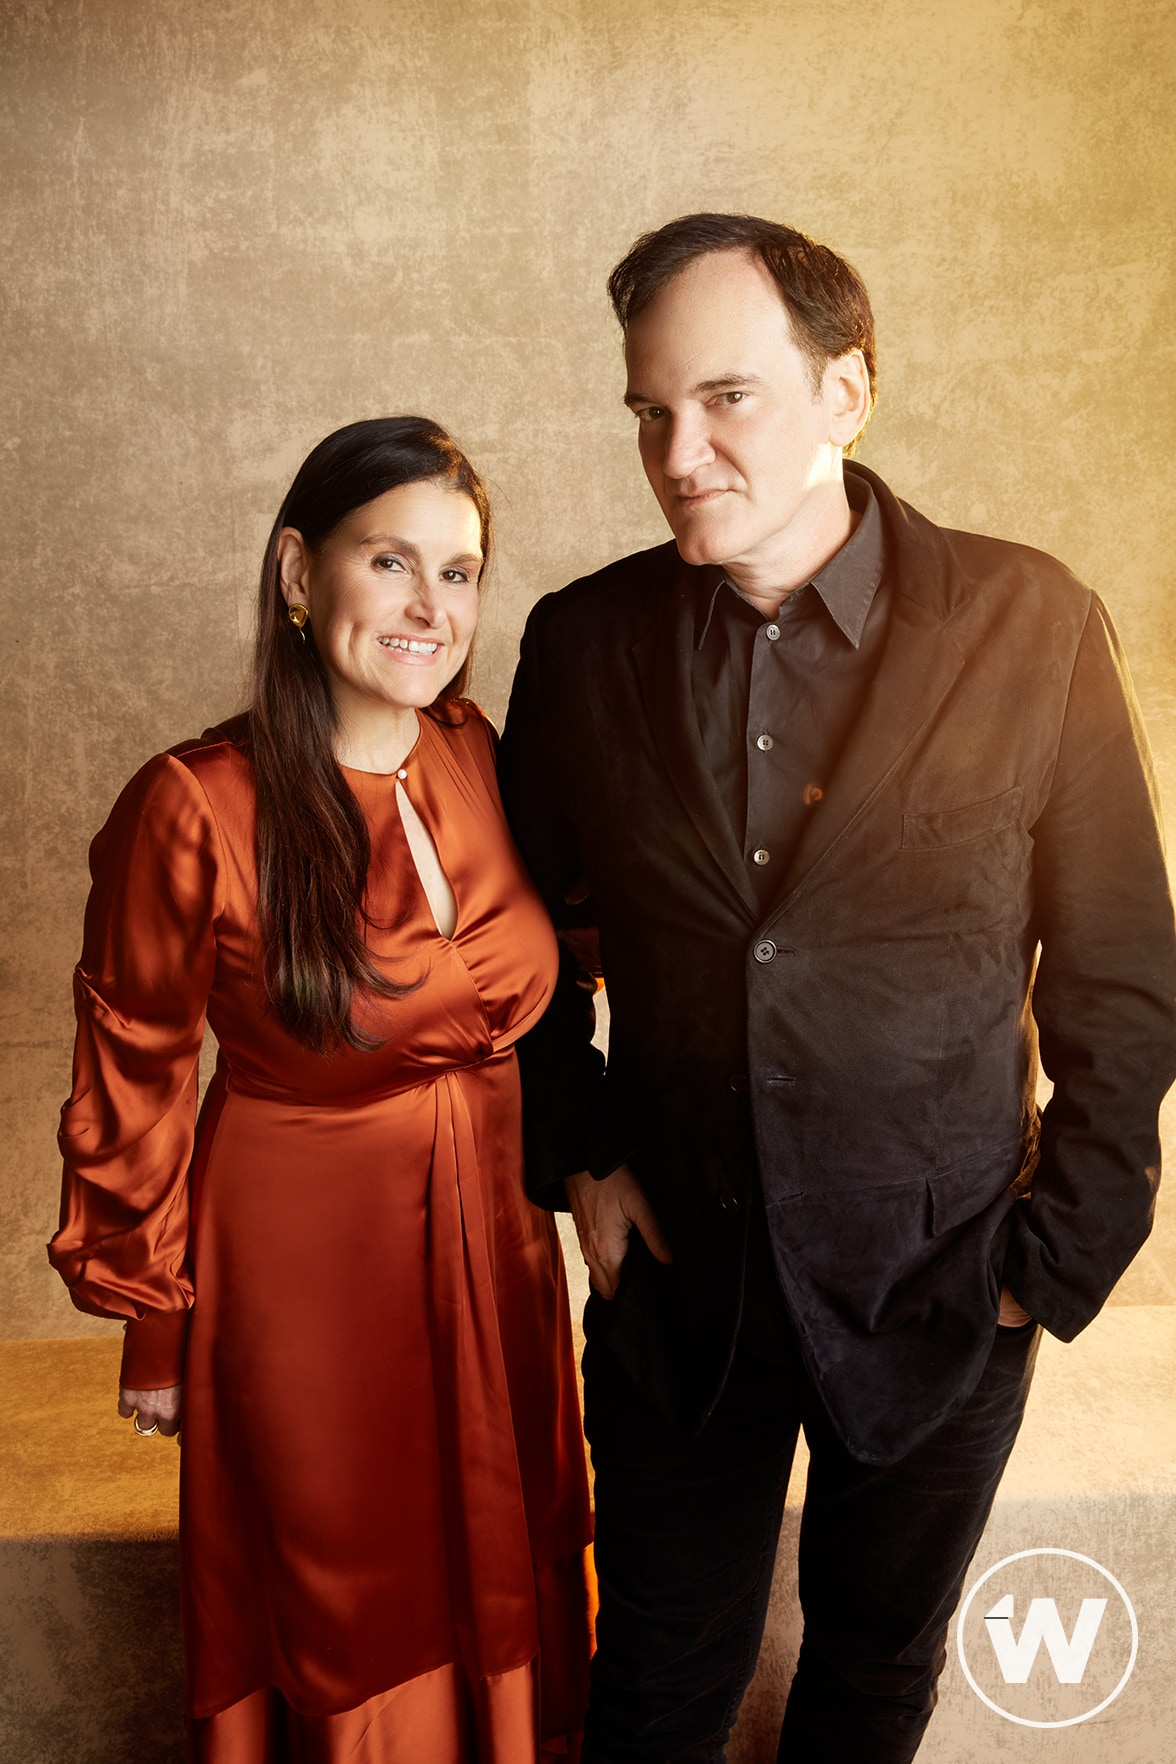 Shannon McIntosh and Quentin Tarantino, Once Upon a Time in Hollywood